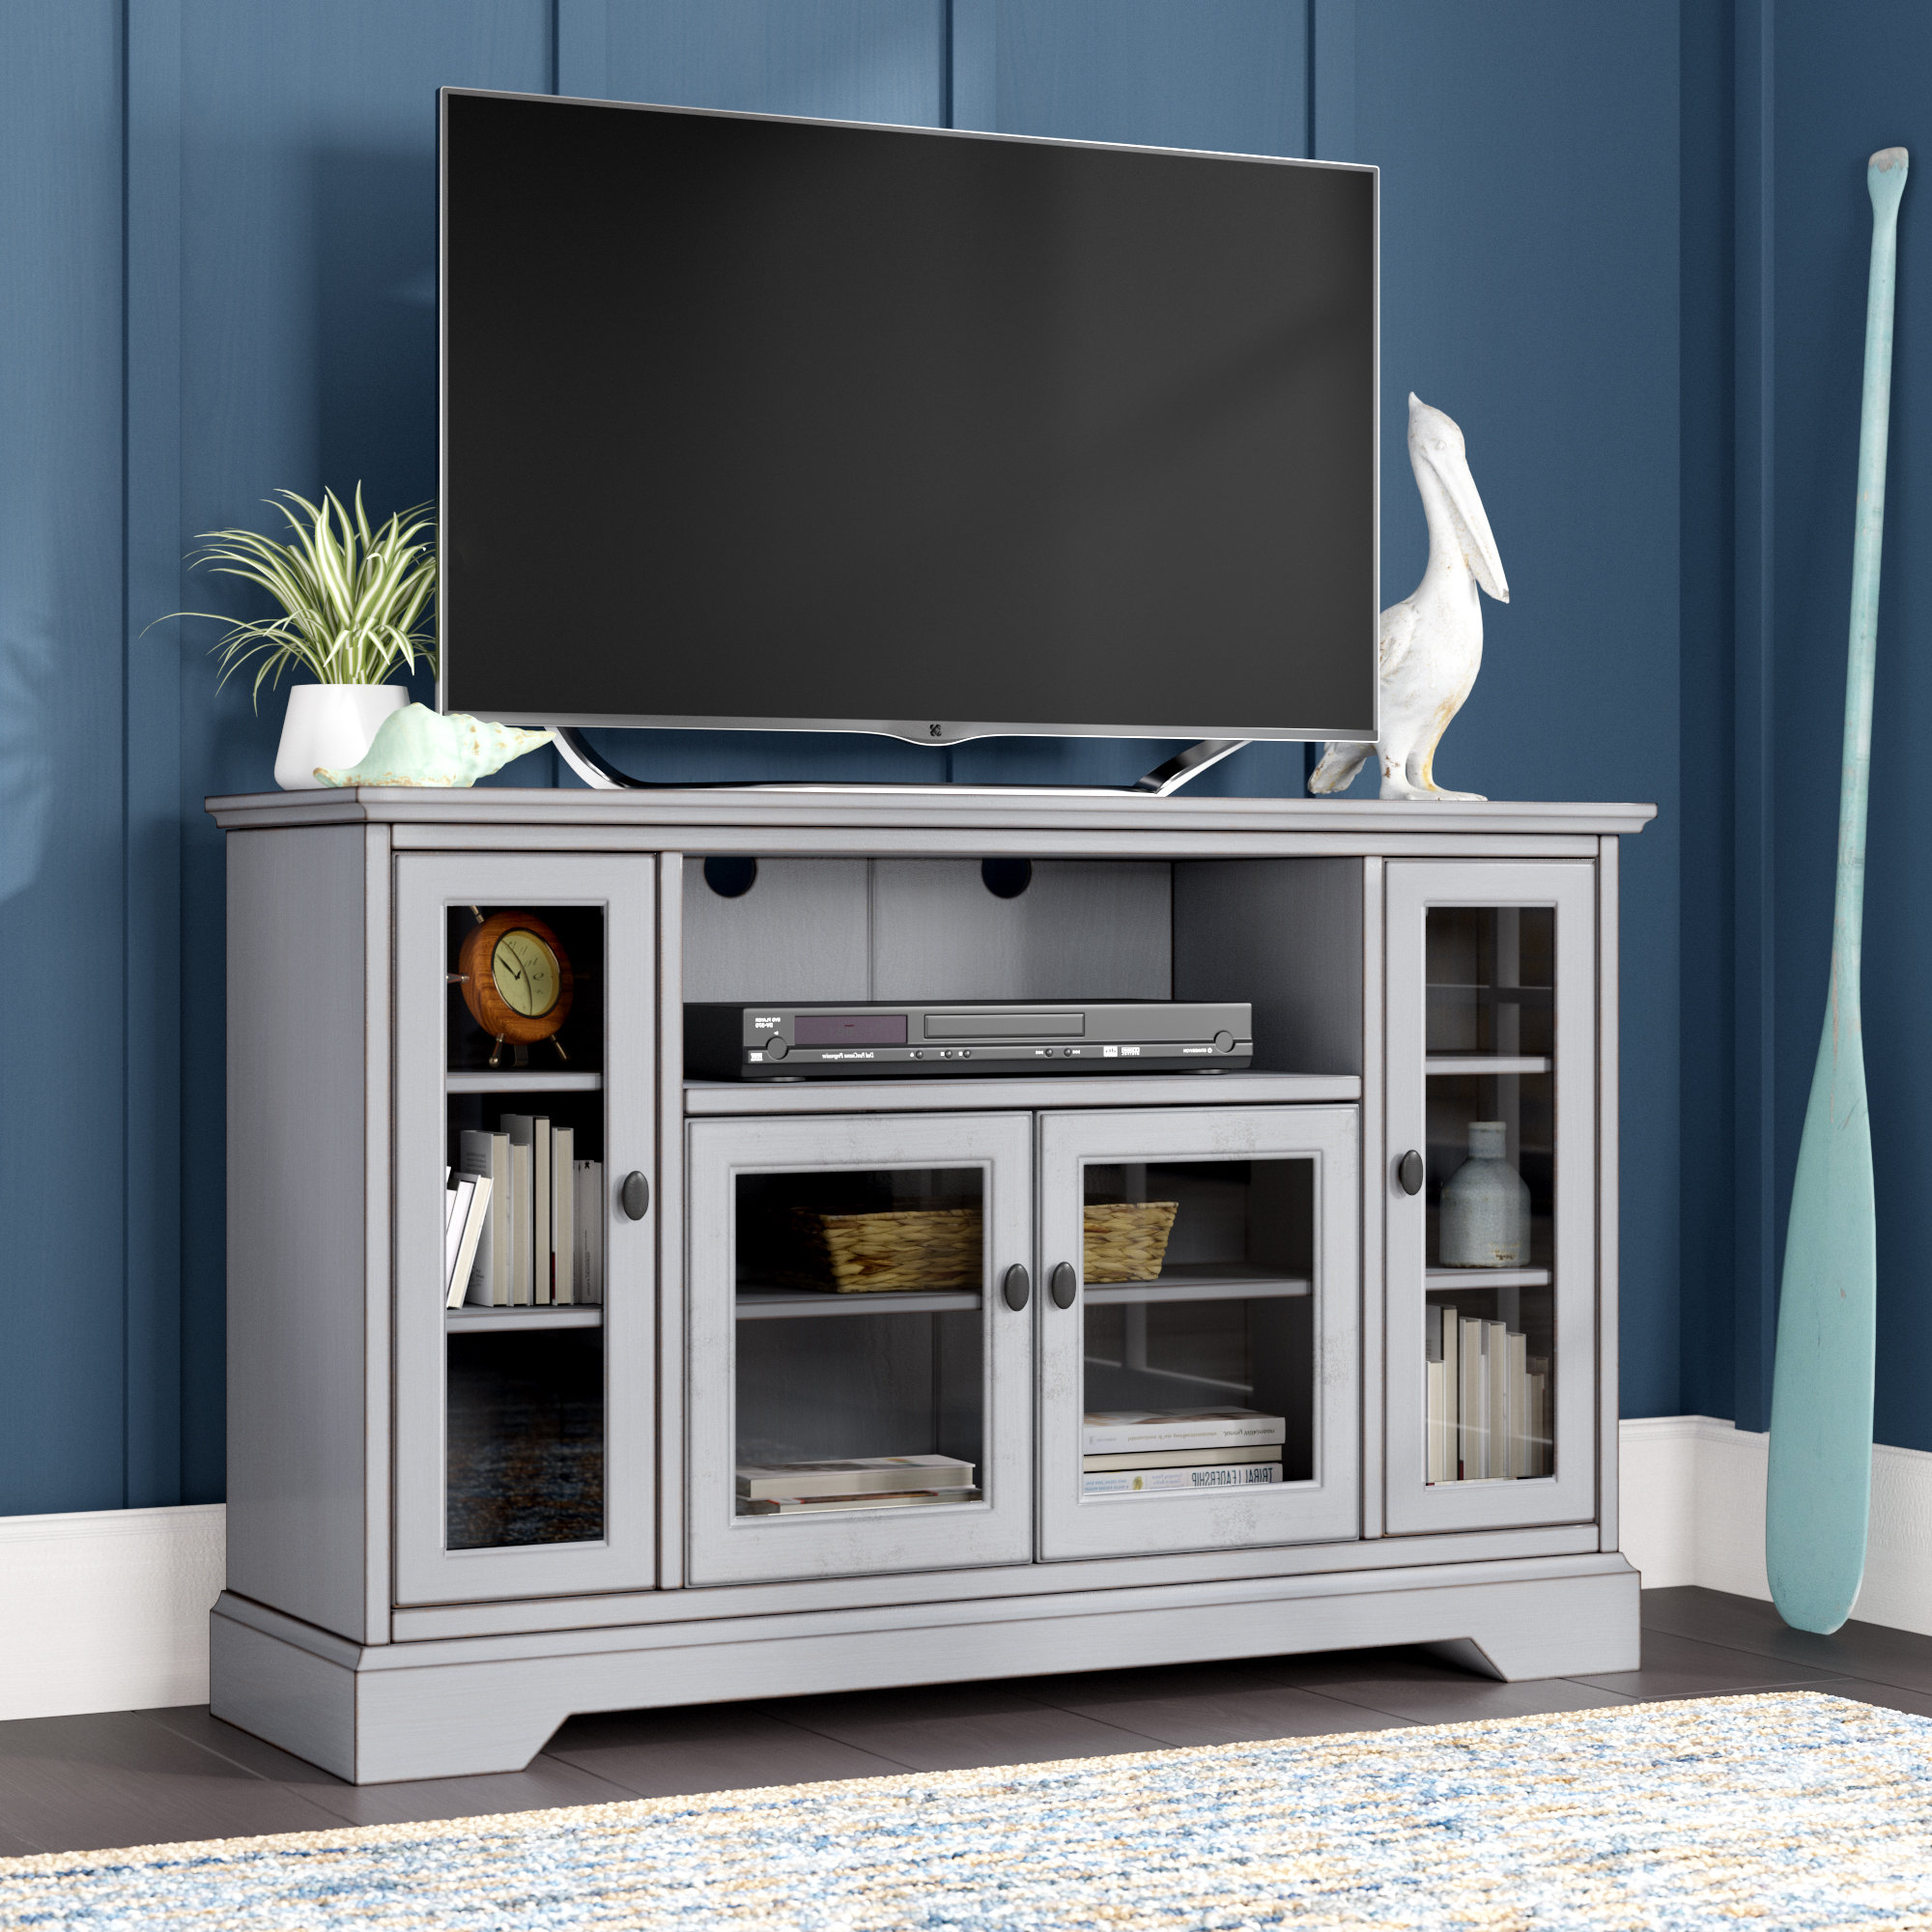 Tall Tv Stands You'll Love | Wayfair For Wyatt 68 Inch Tv Stands (Gallery 10 of 20)